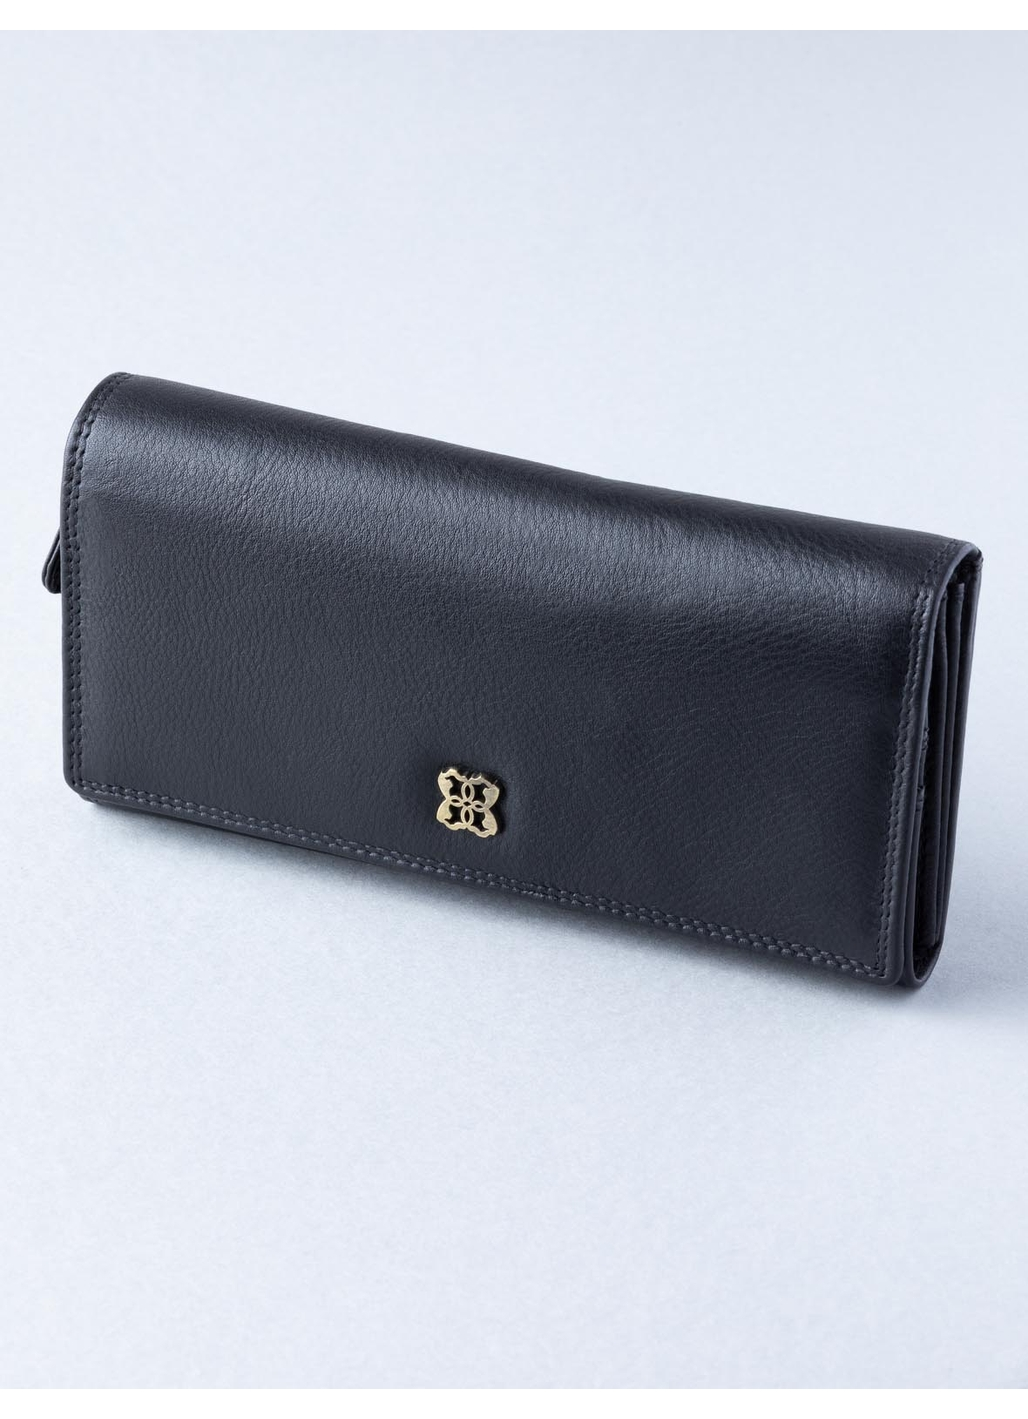 Rickerby 16cm Leather Purse in Black